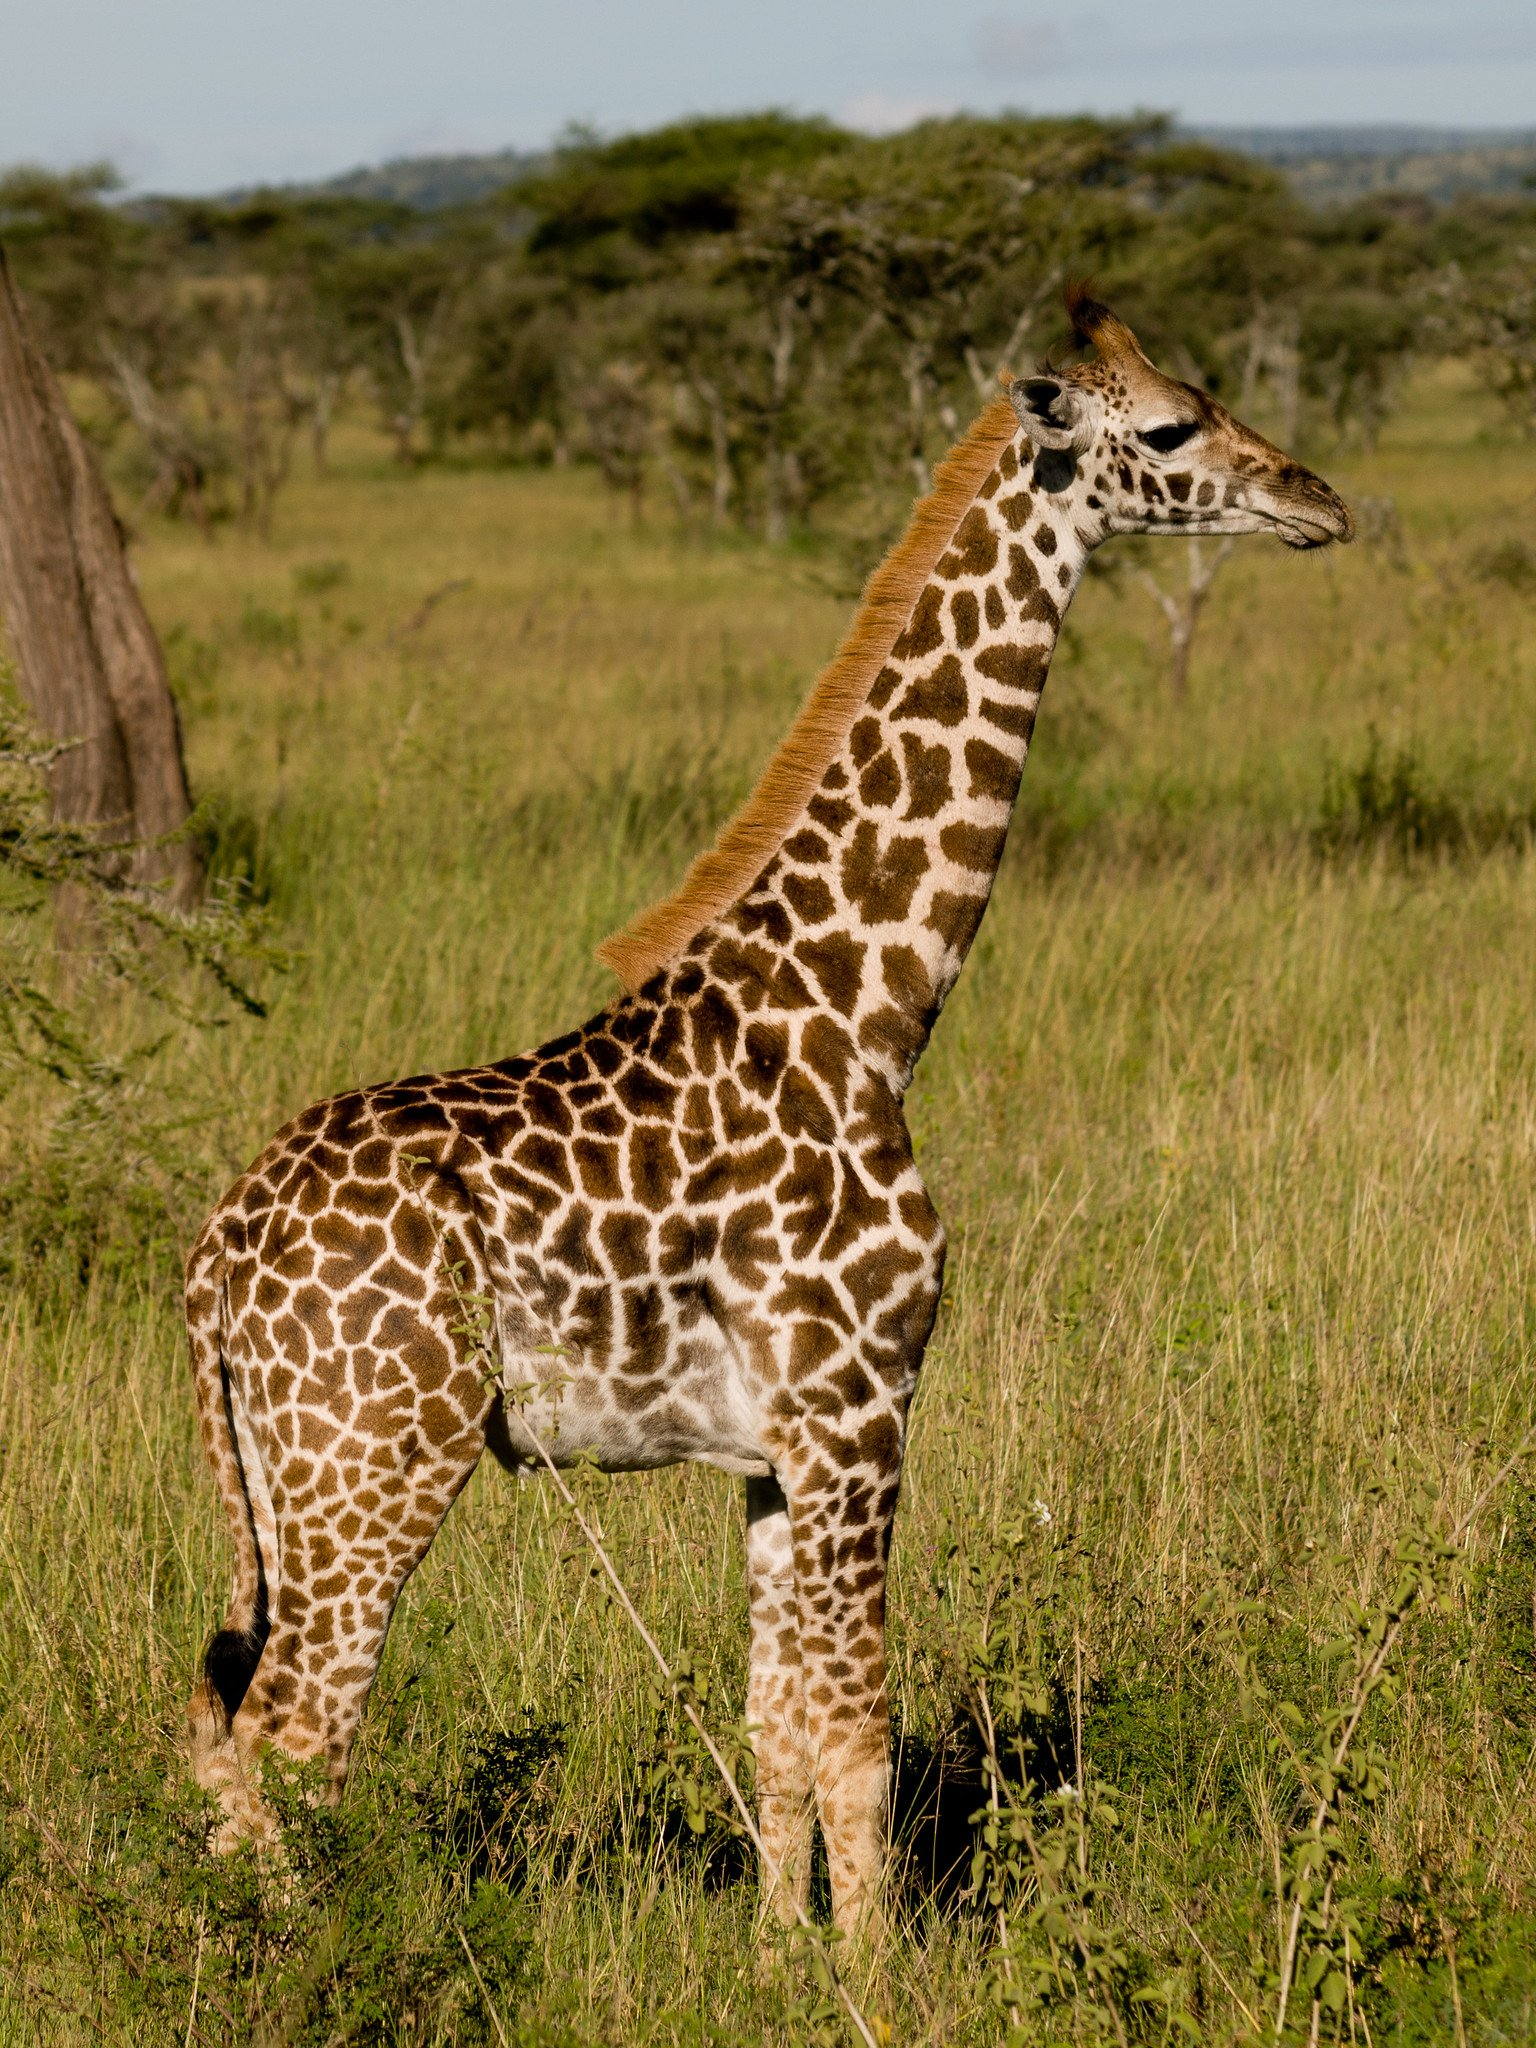 A portrait of a giraffe in the Serengeti National Park, Tanzaniaon April 3, 2008 | Photo: Flickr/William Warby